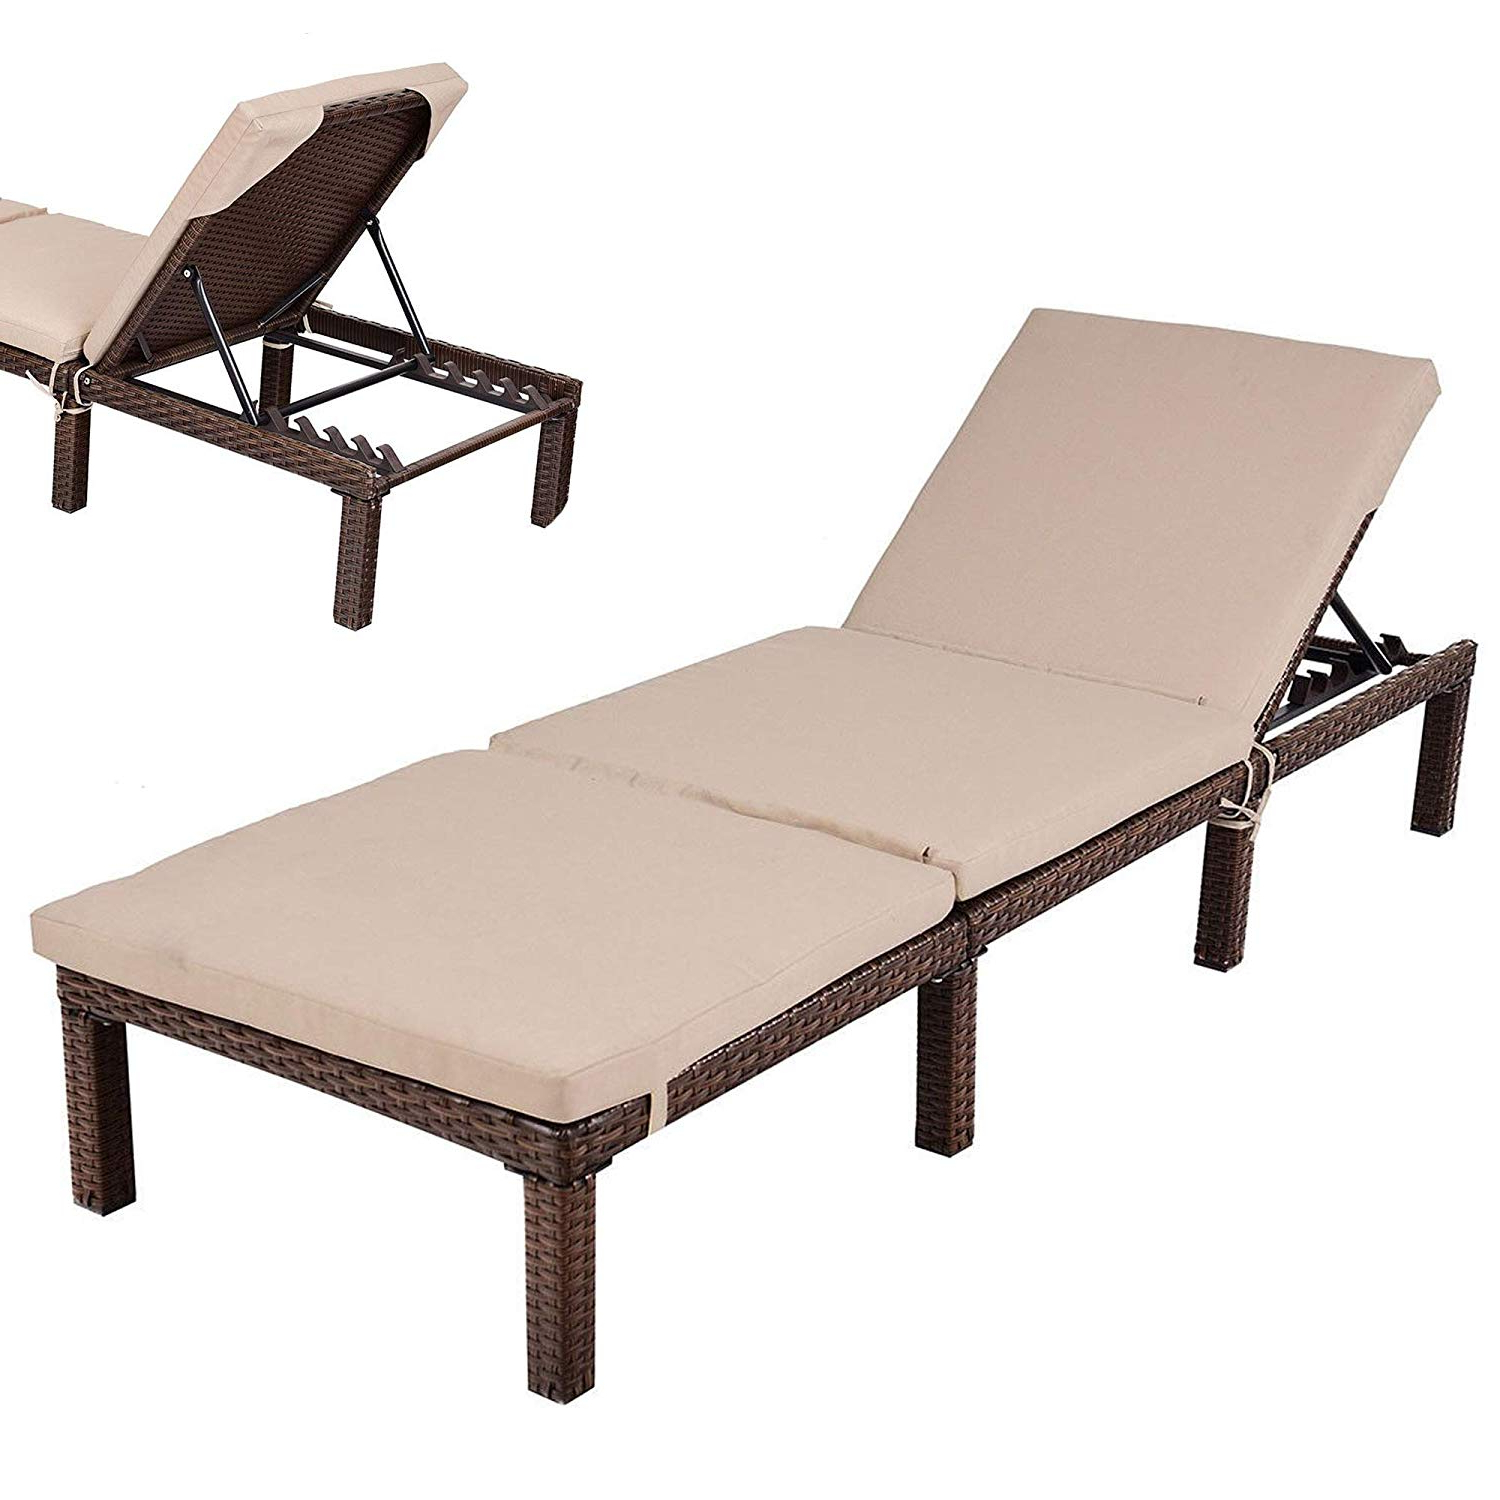 Outdoor Cushion Best Target Chaise Dimensions Pool Stunning Throughout Recent Standard Size Chaise Lounge Chairs (Gallery 12 of 25)